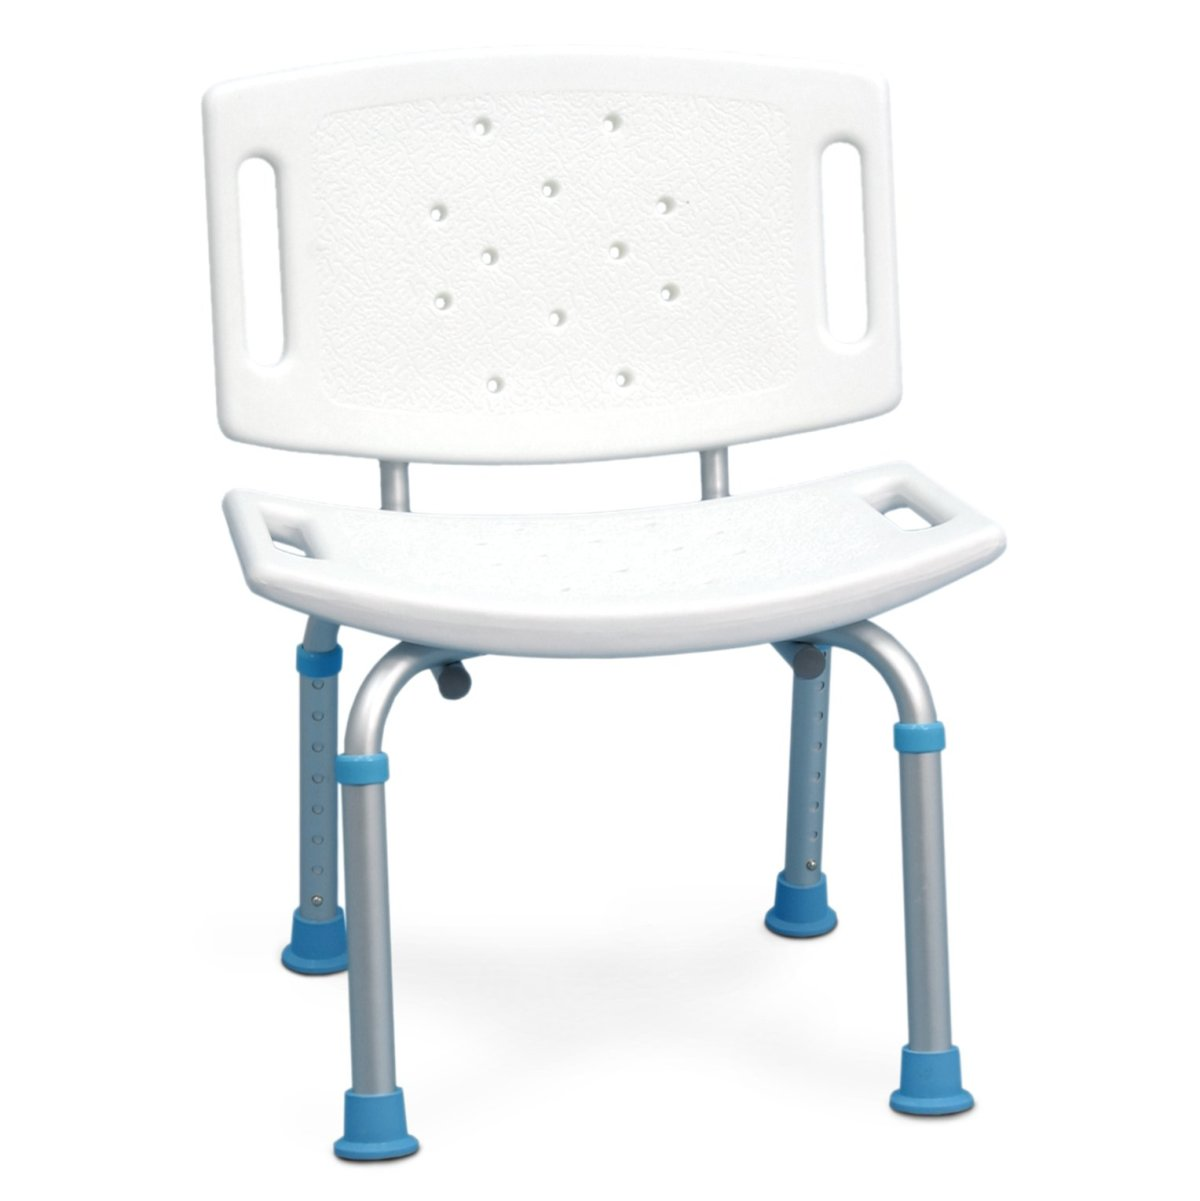 Perfect Chair Shower Bath Seat Non Slip Bench Bathtub Stool Medical Handicap Aid  Safety